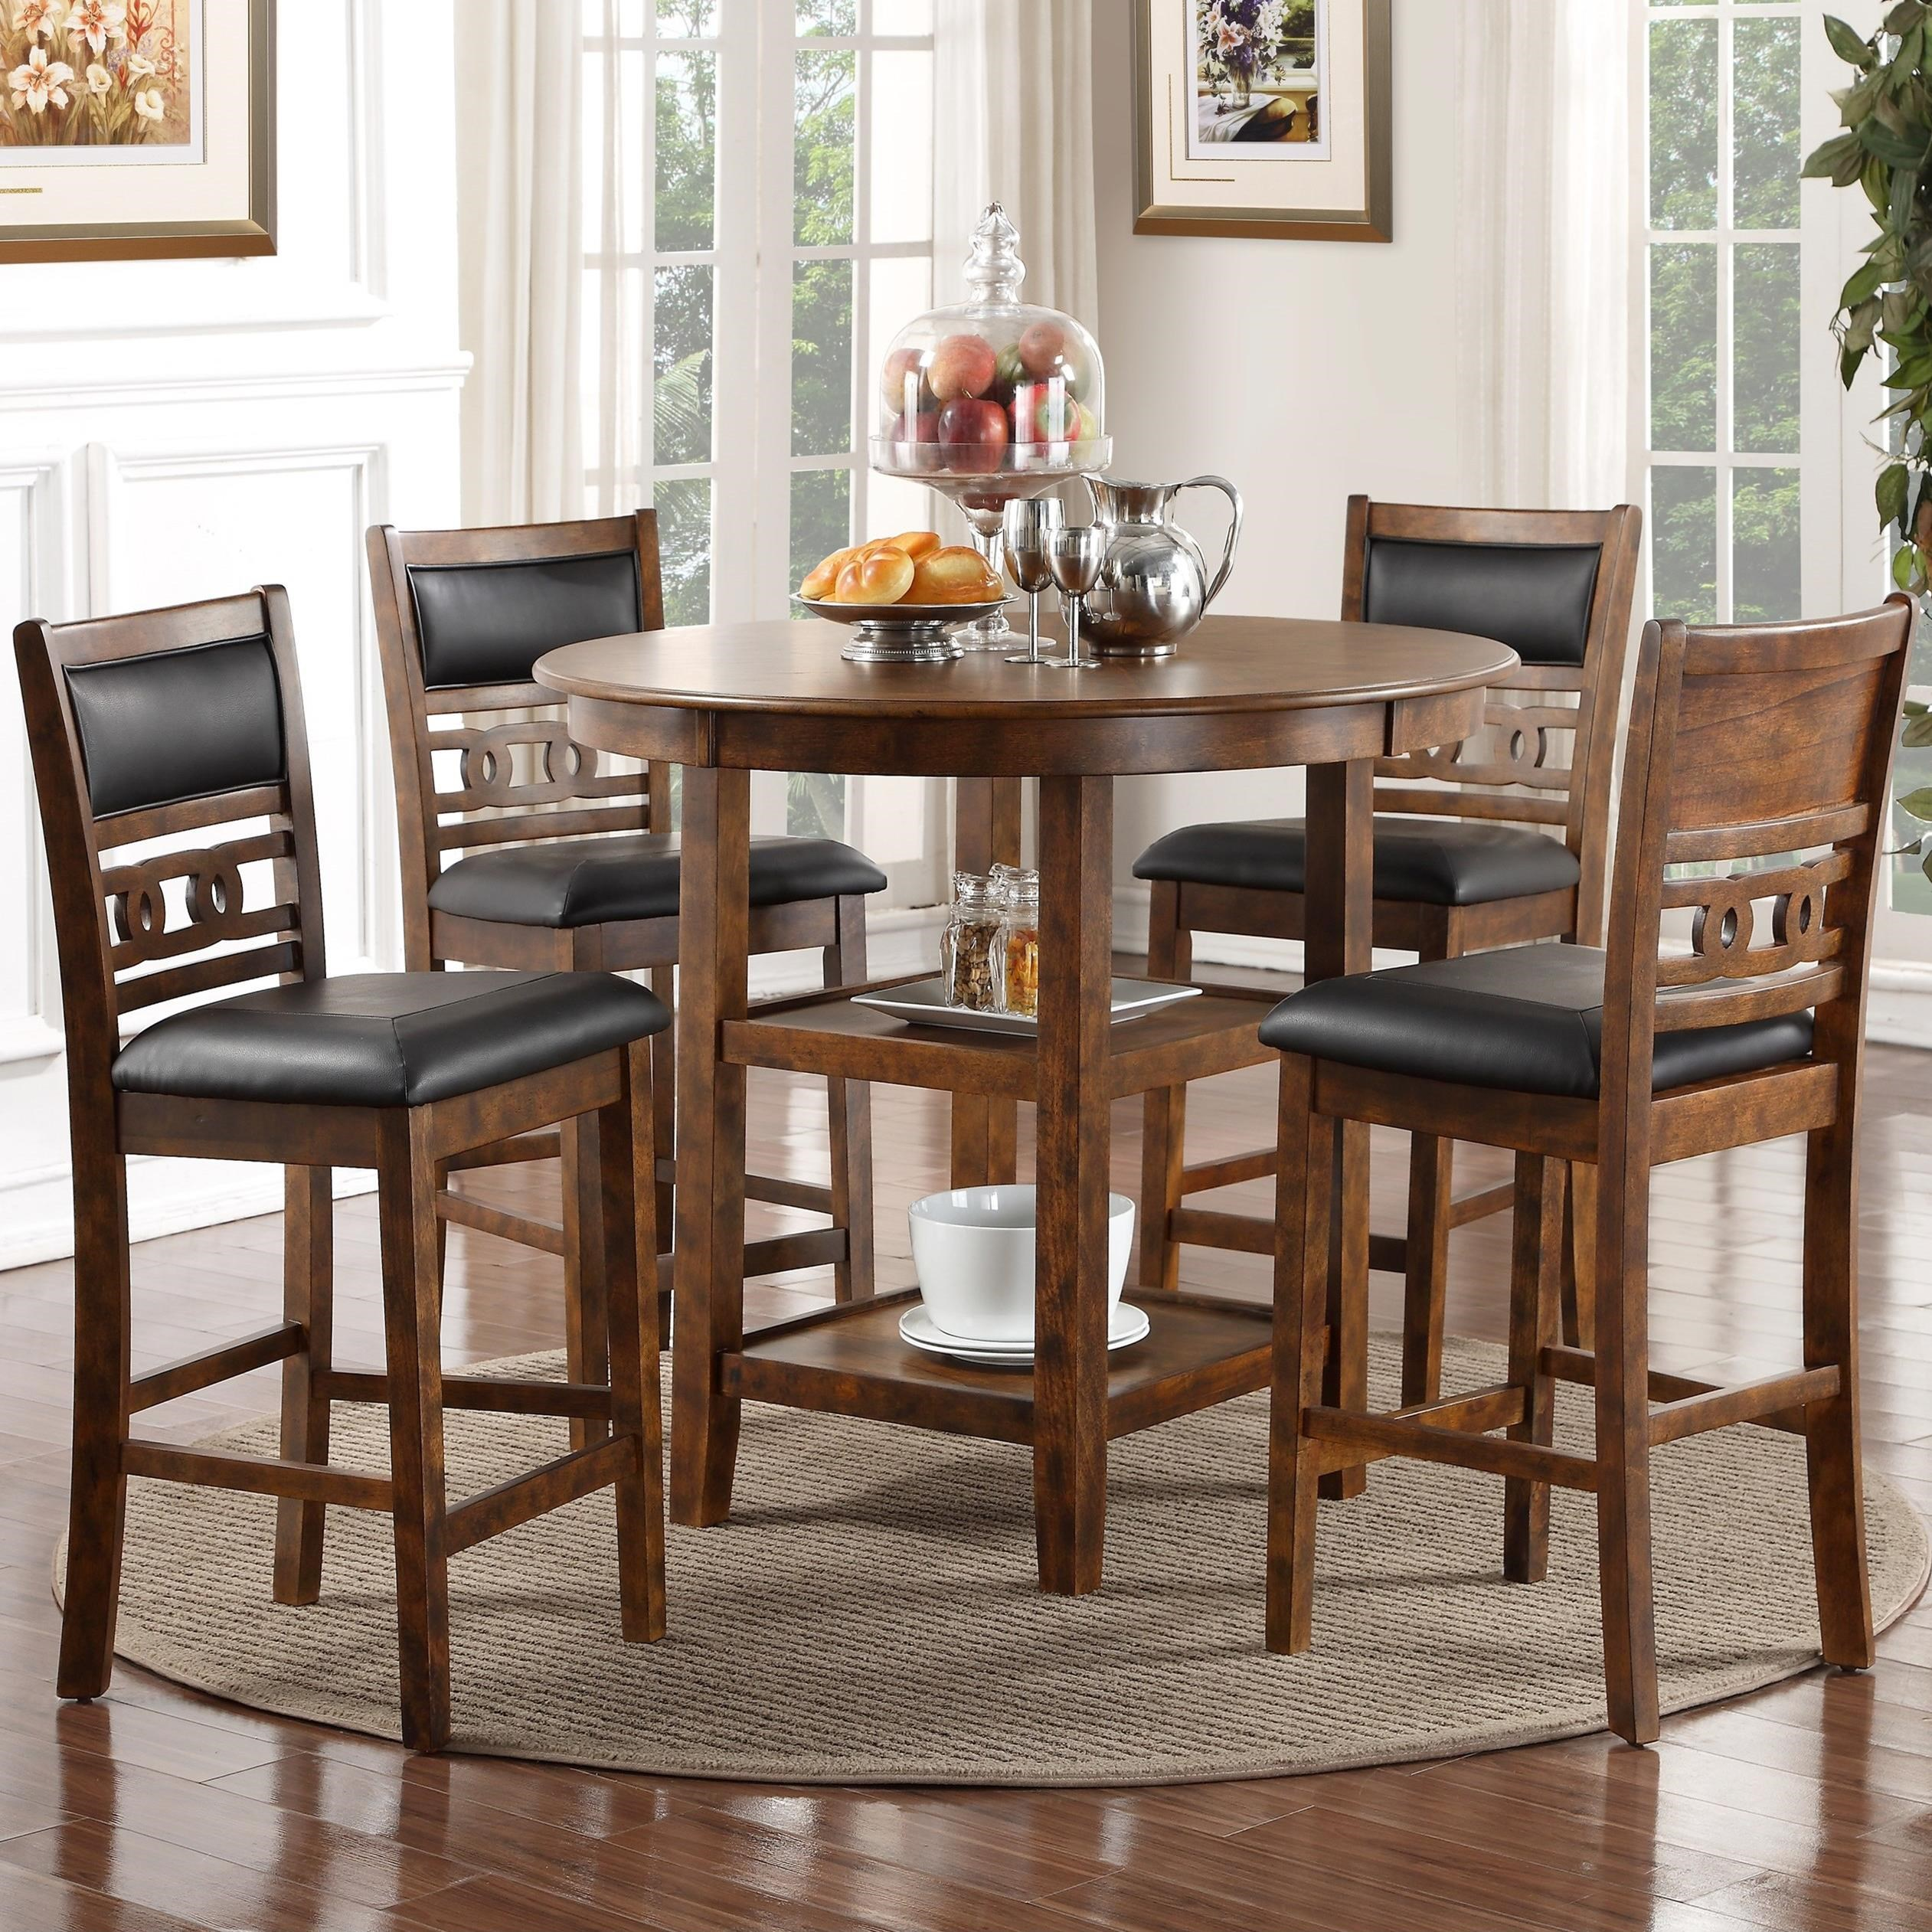 Counter Height Dining Tables: New Classic Gia D1701-52S-BRN Counter Height Dining Table